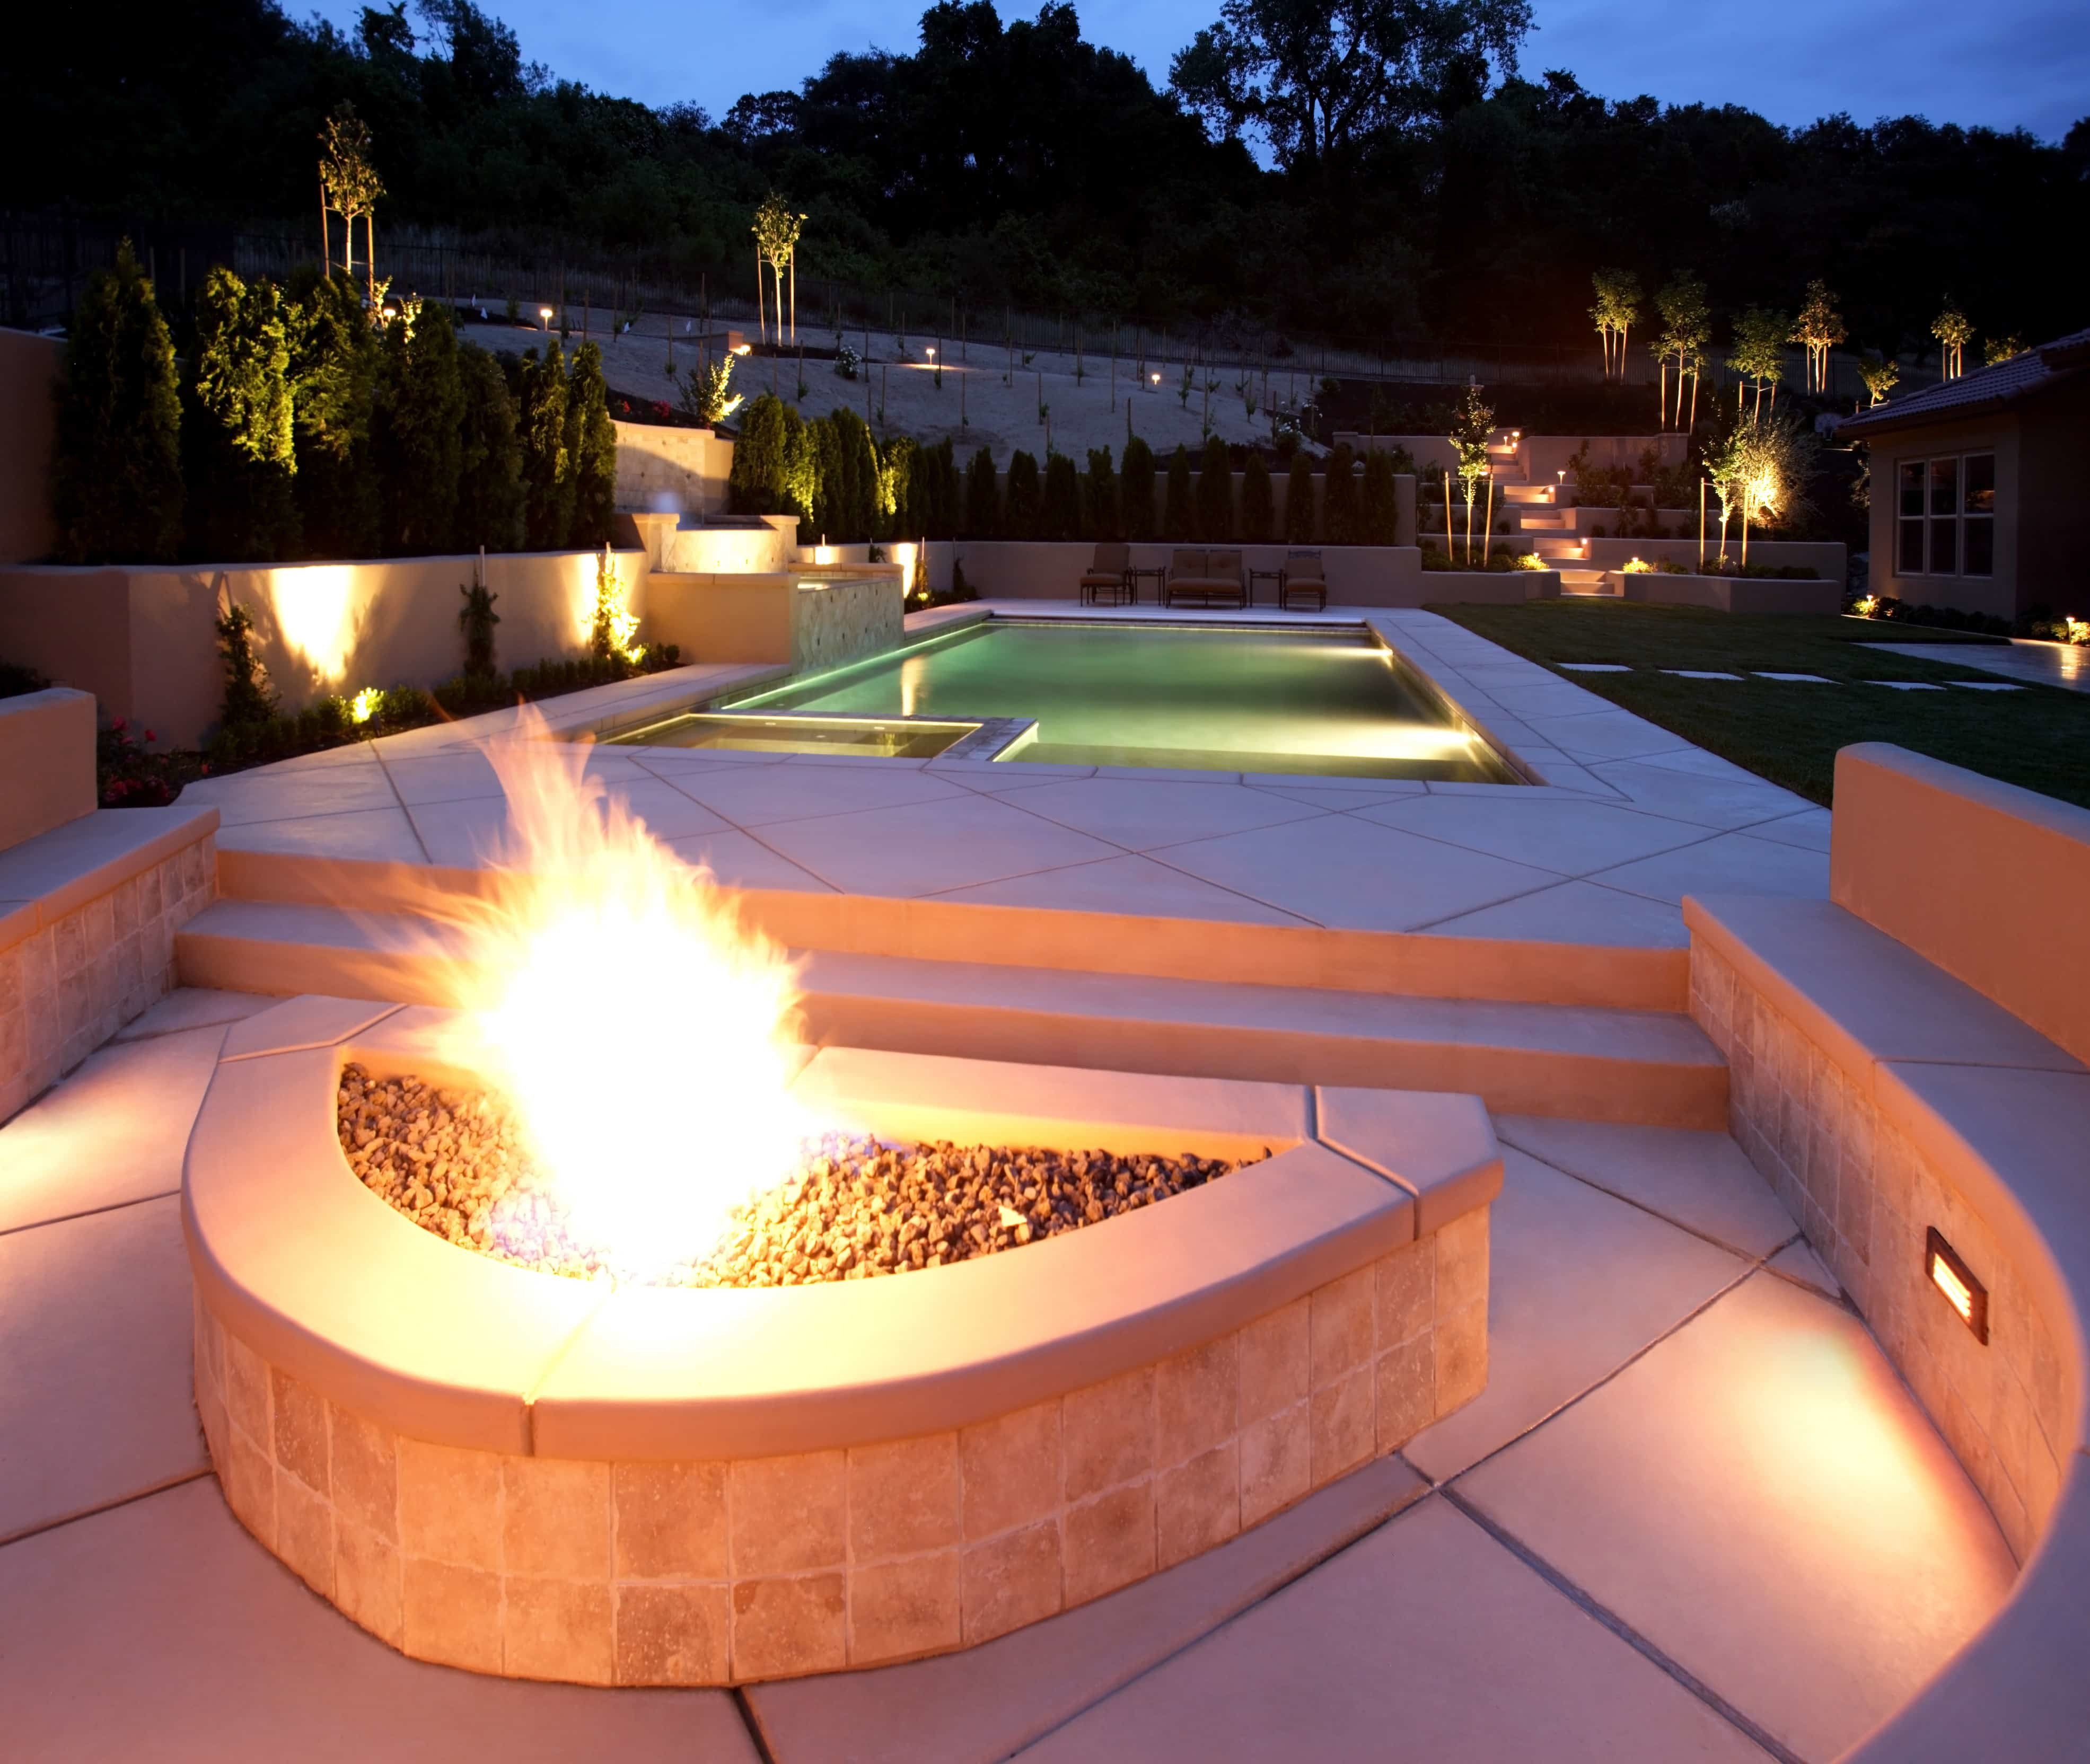 5 easy steps to creating the perfect backyard ambiance mybekins